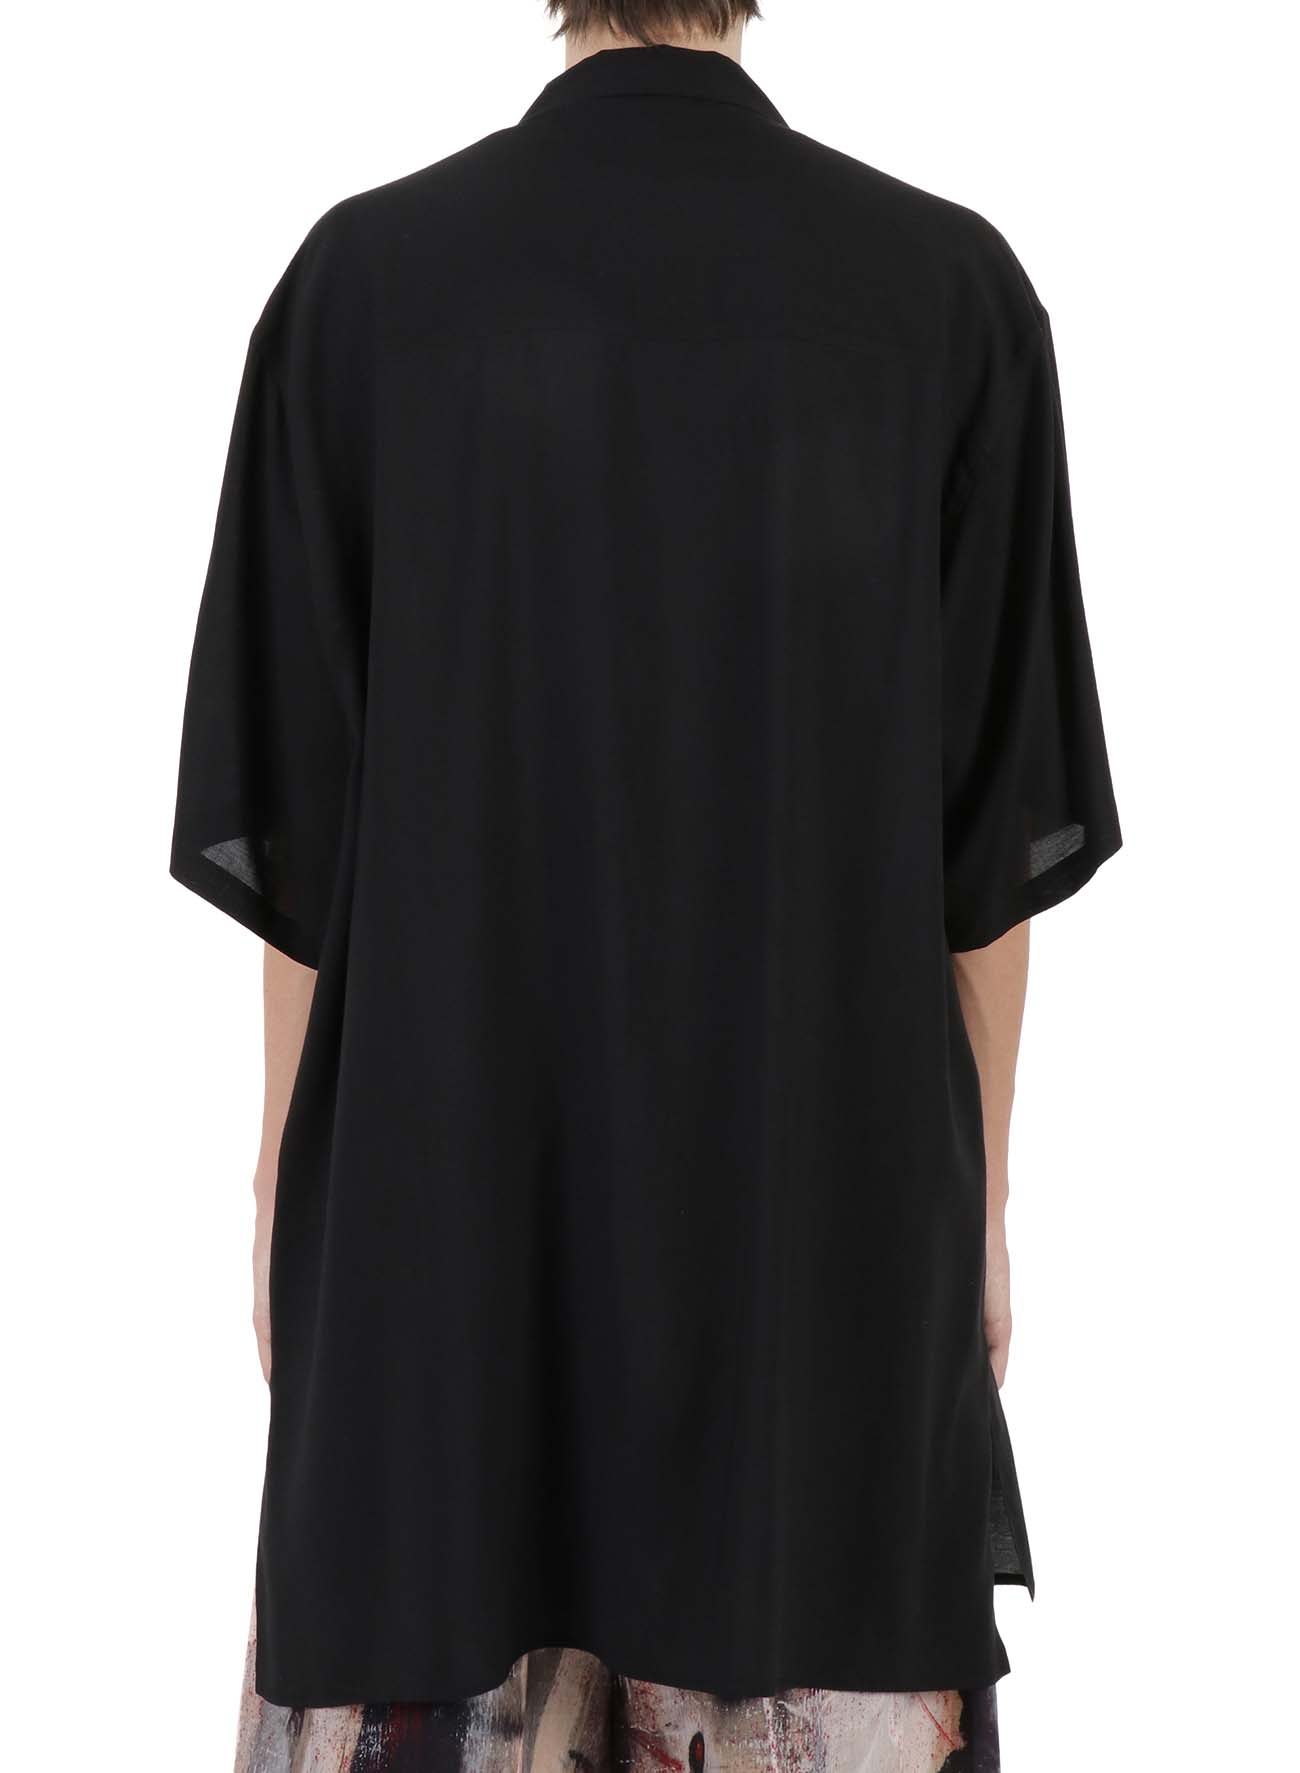 CELLULOSE LAWN OPEN COLLAR SHORT SLEEVES BLOUSE